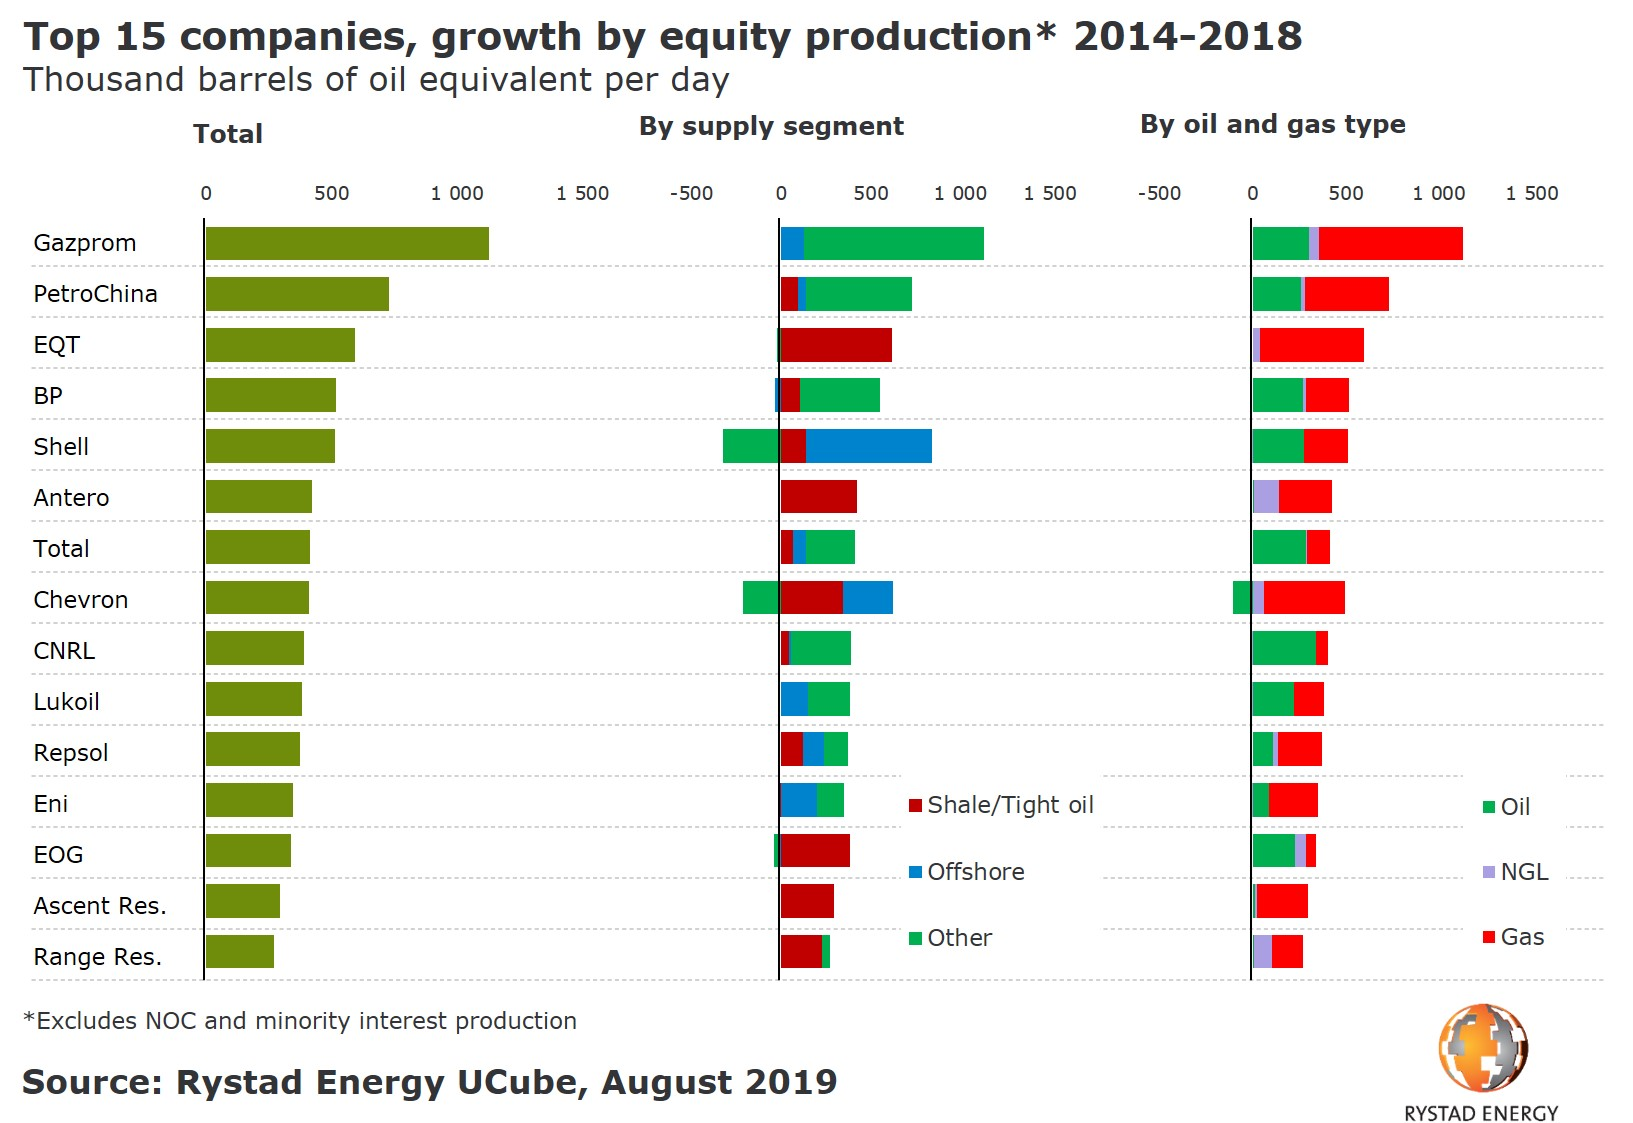 20190809_PR CHart Upstream Top 15 EP companies growth by equity production 2014 2018.jpg